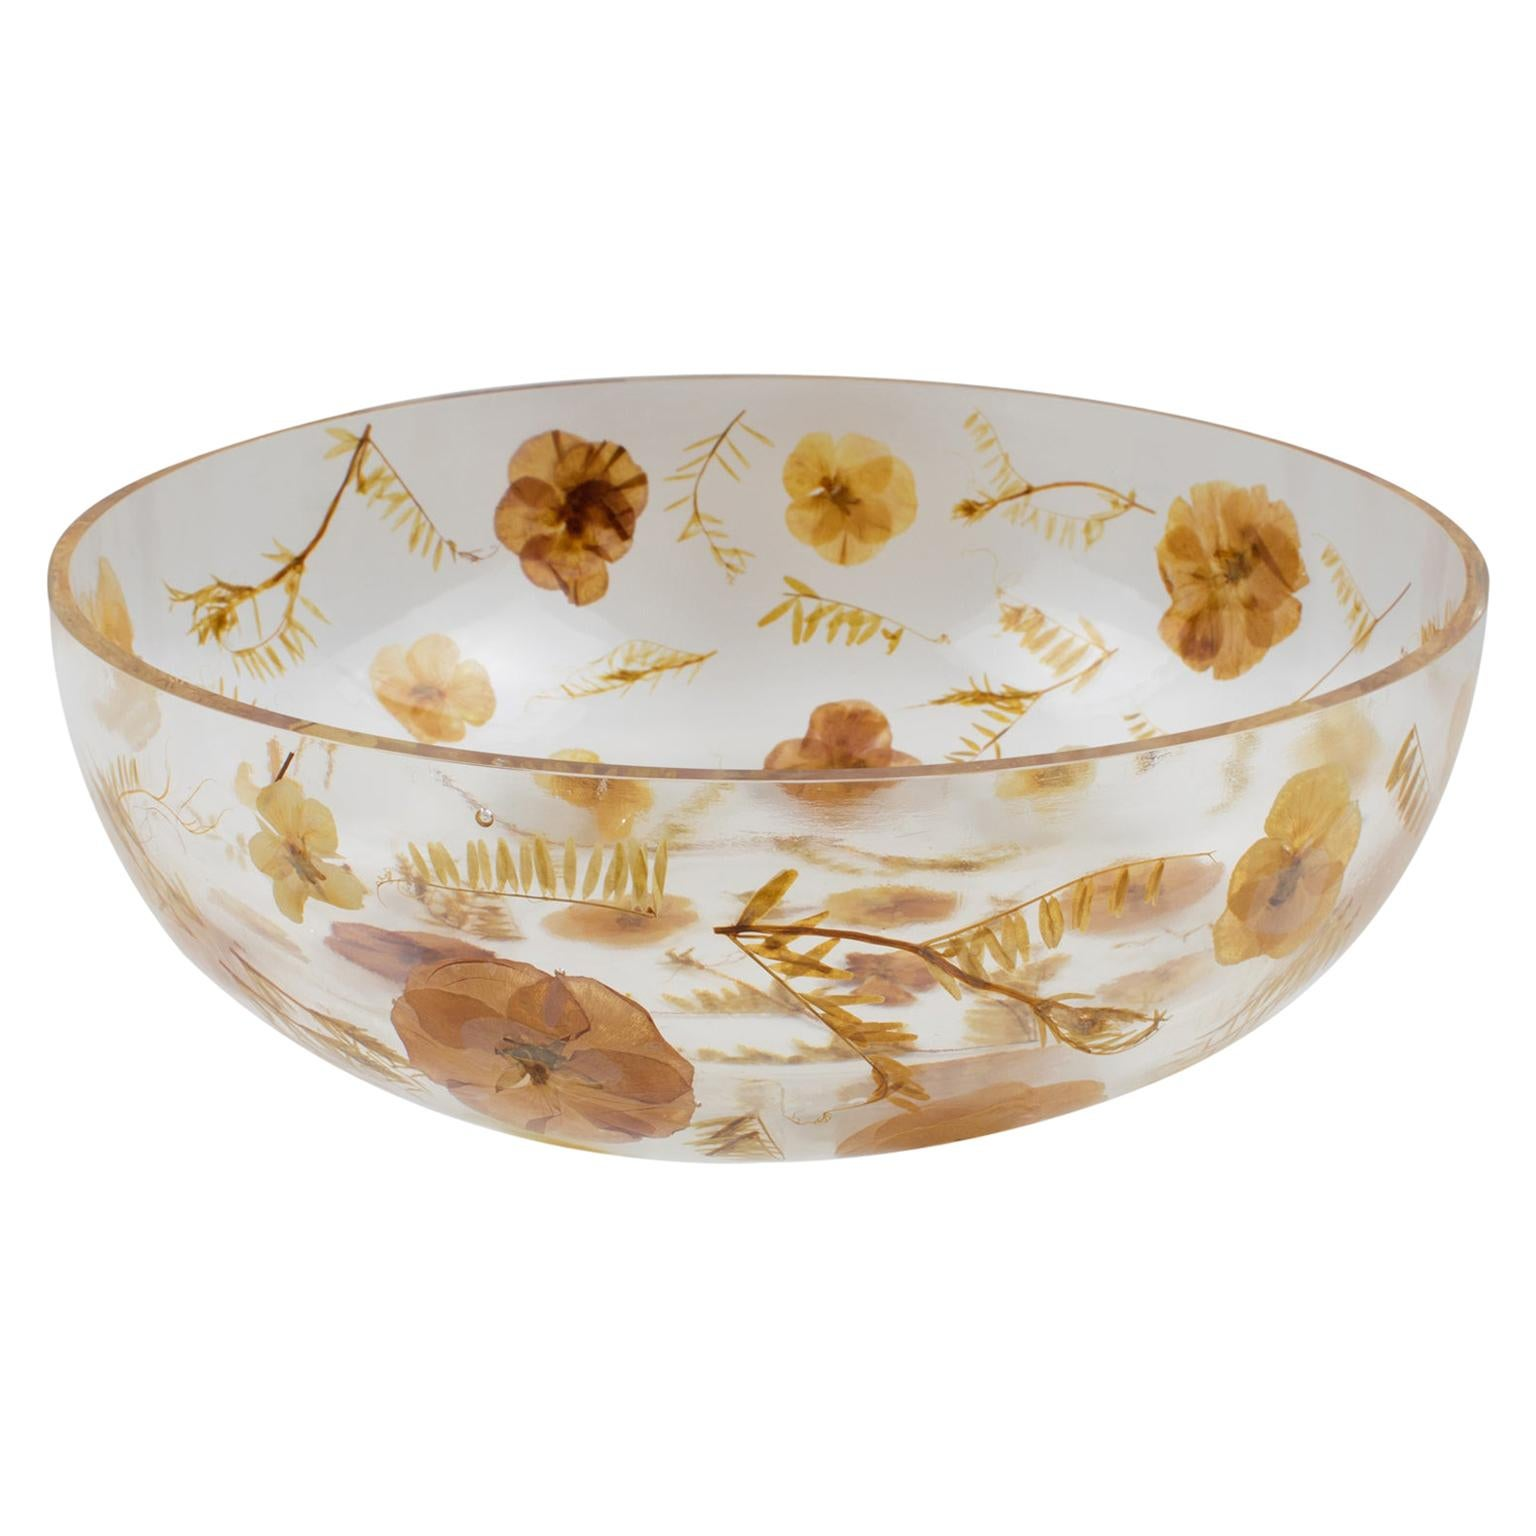 Resin Bowl Centerpiece with Leaves and Flowers Inclusions, Italy 1970